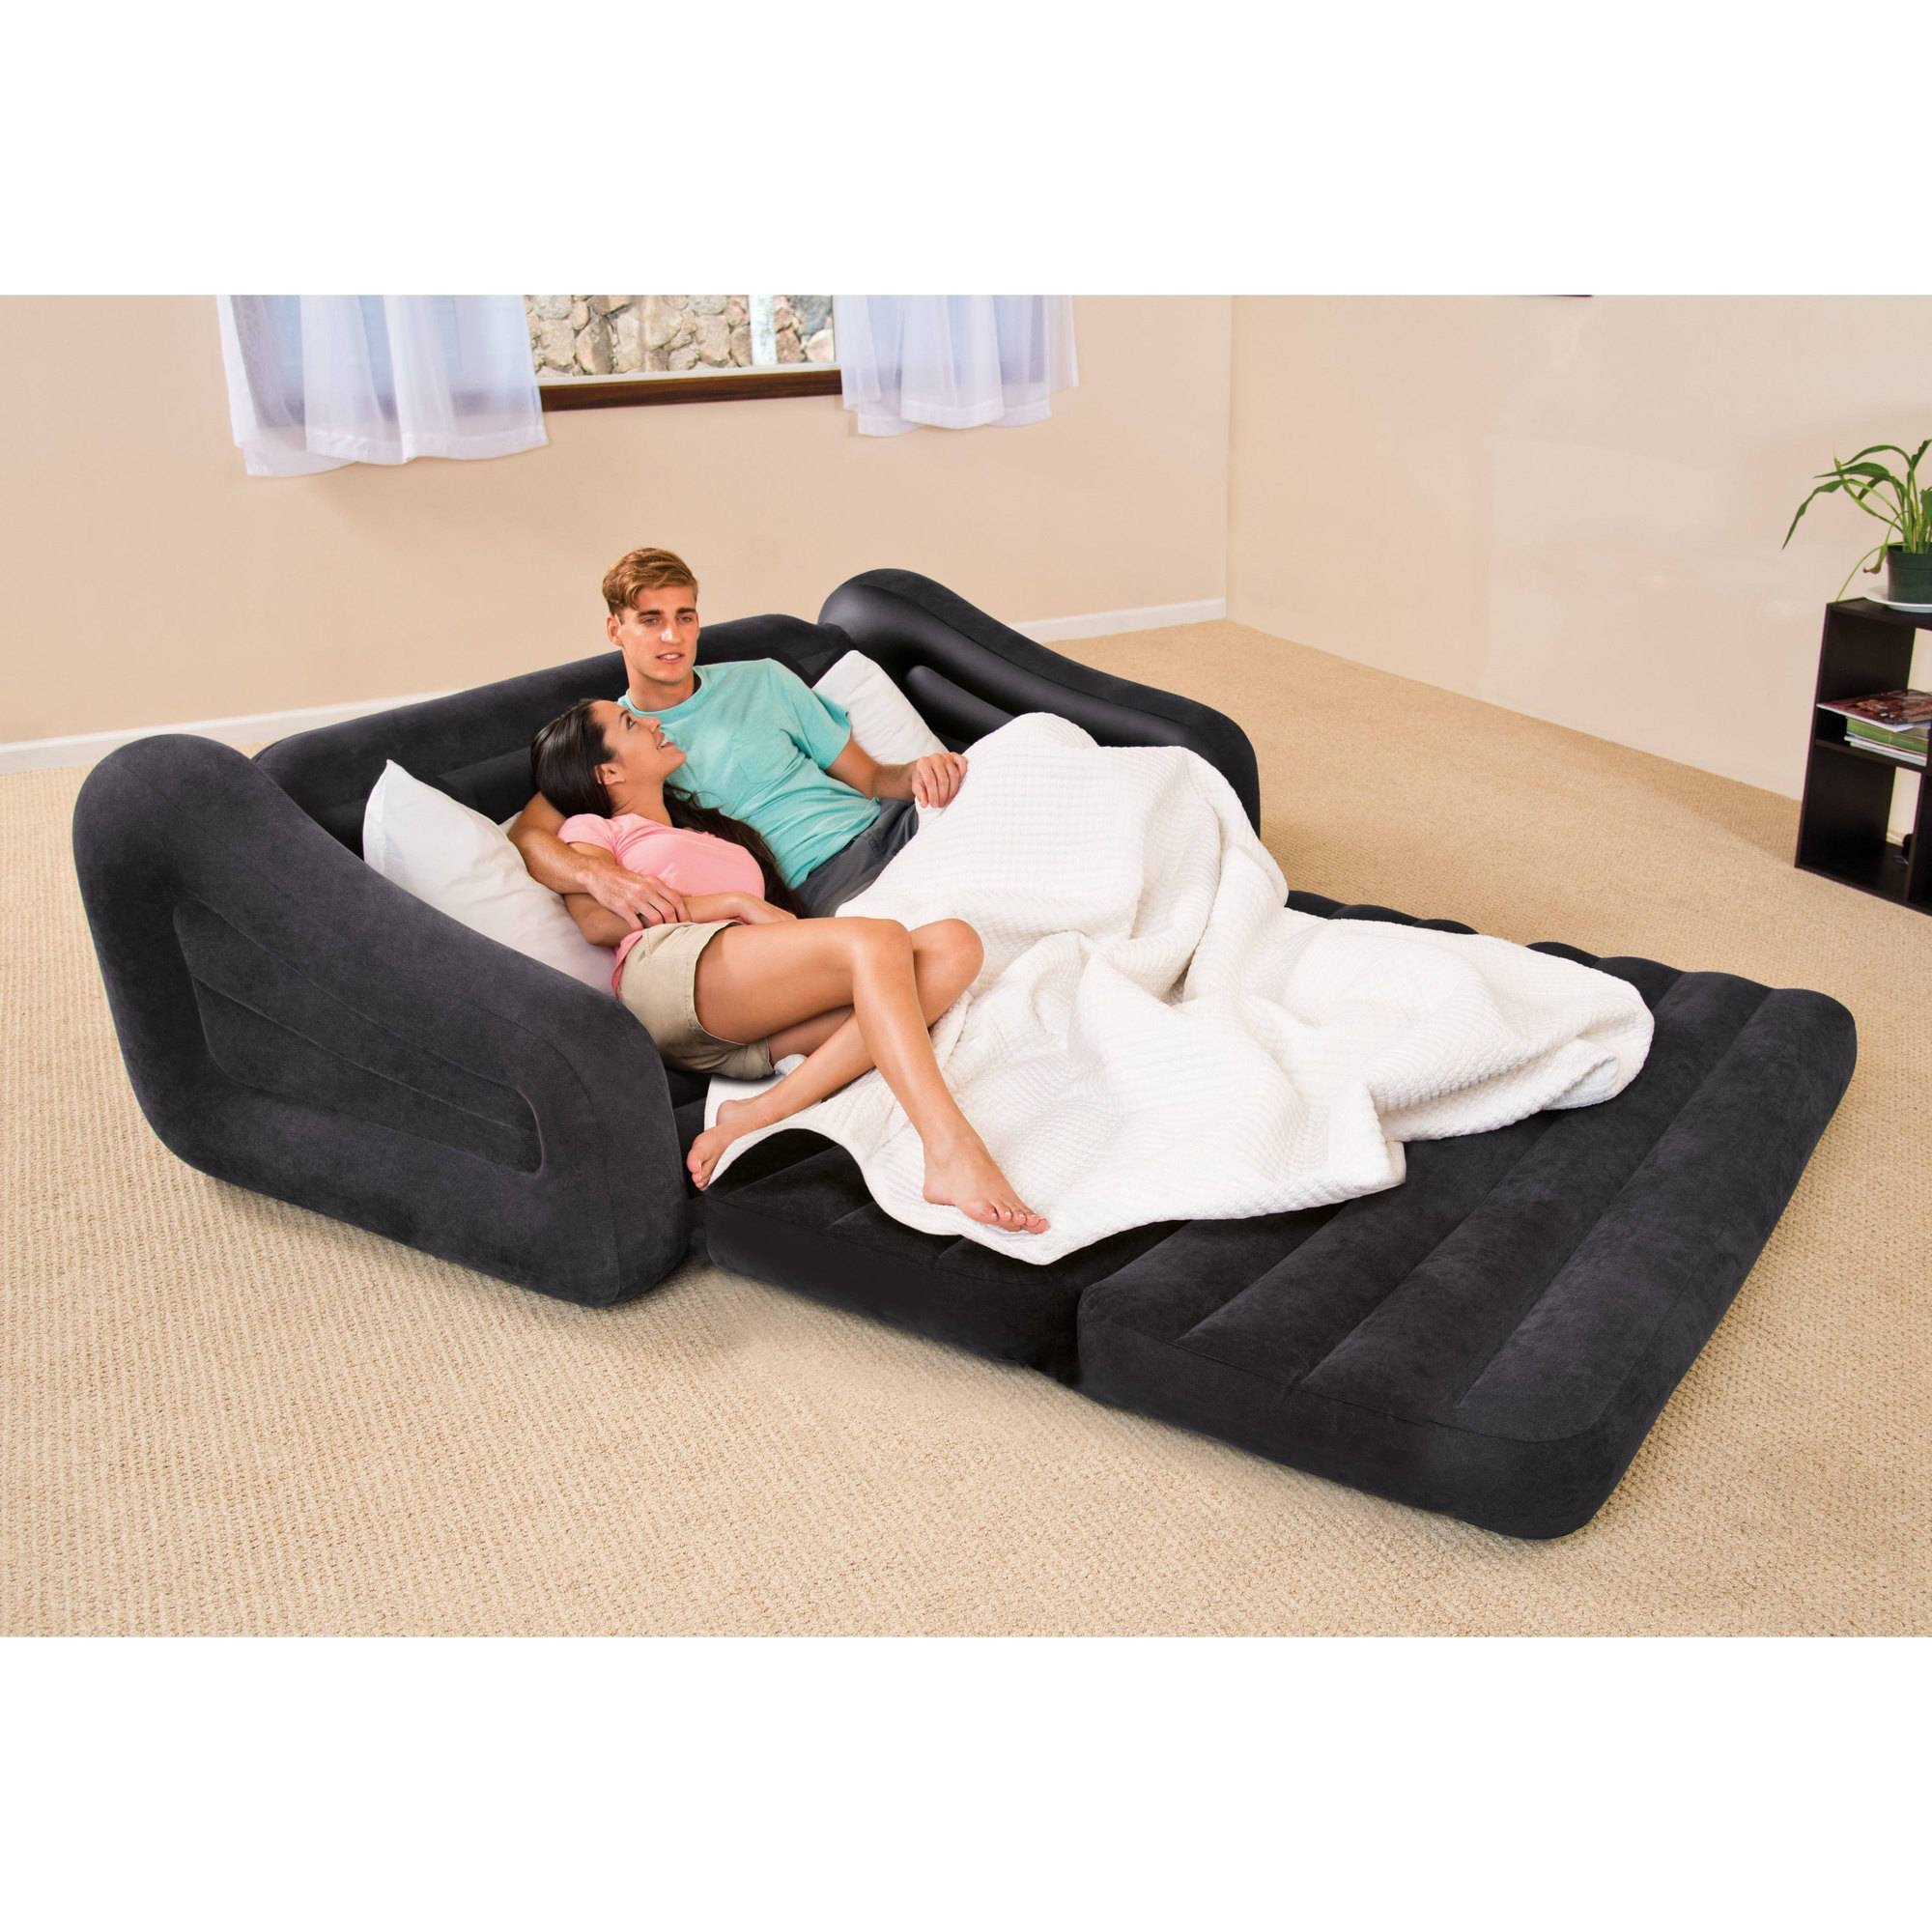 Intex Queen Inflatable Pull Out Sofa Bed - Walmart in Sofa Sleepers Queen Size (Image 7 of 30)